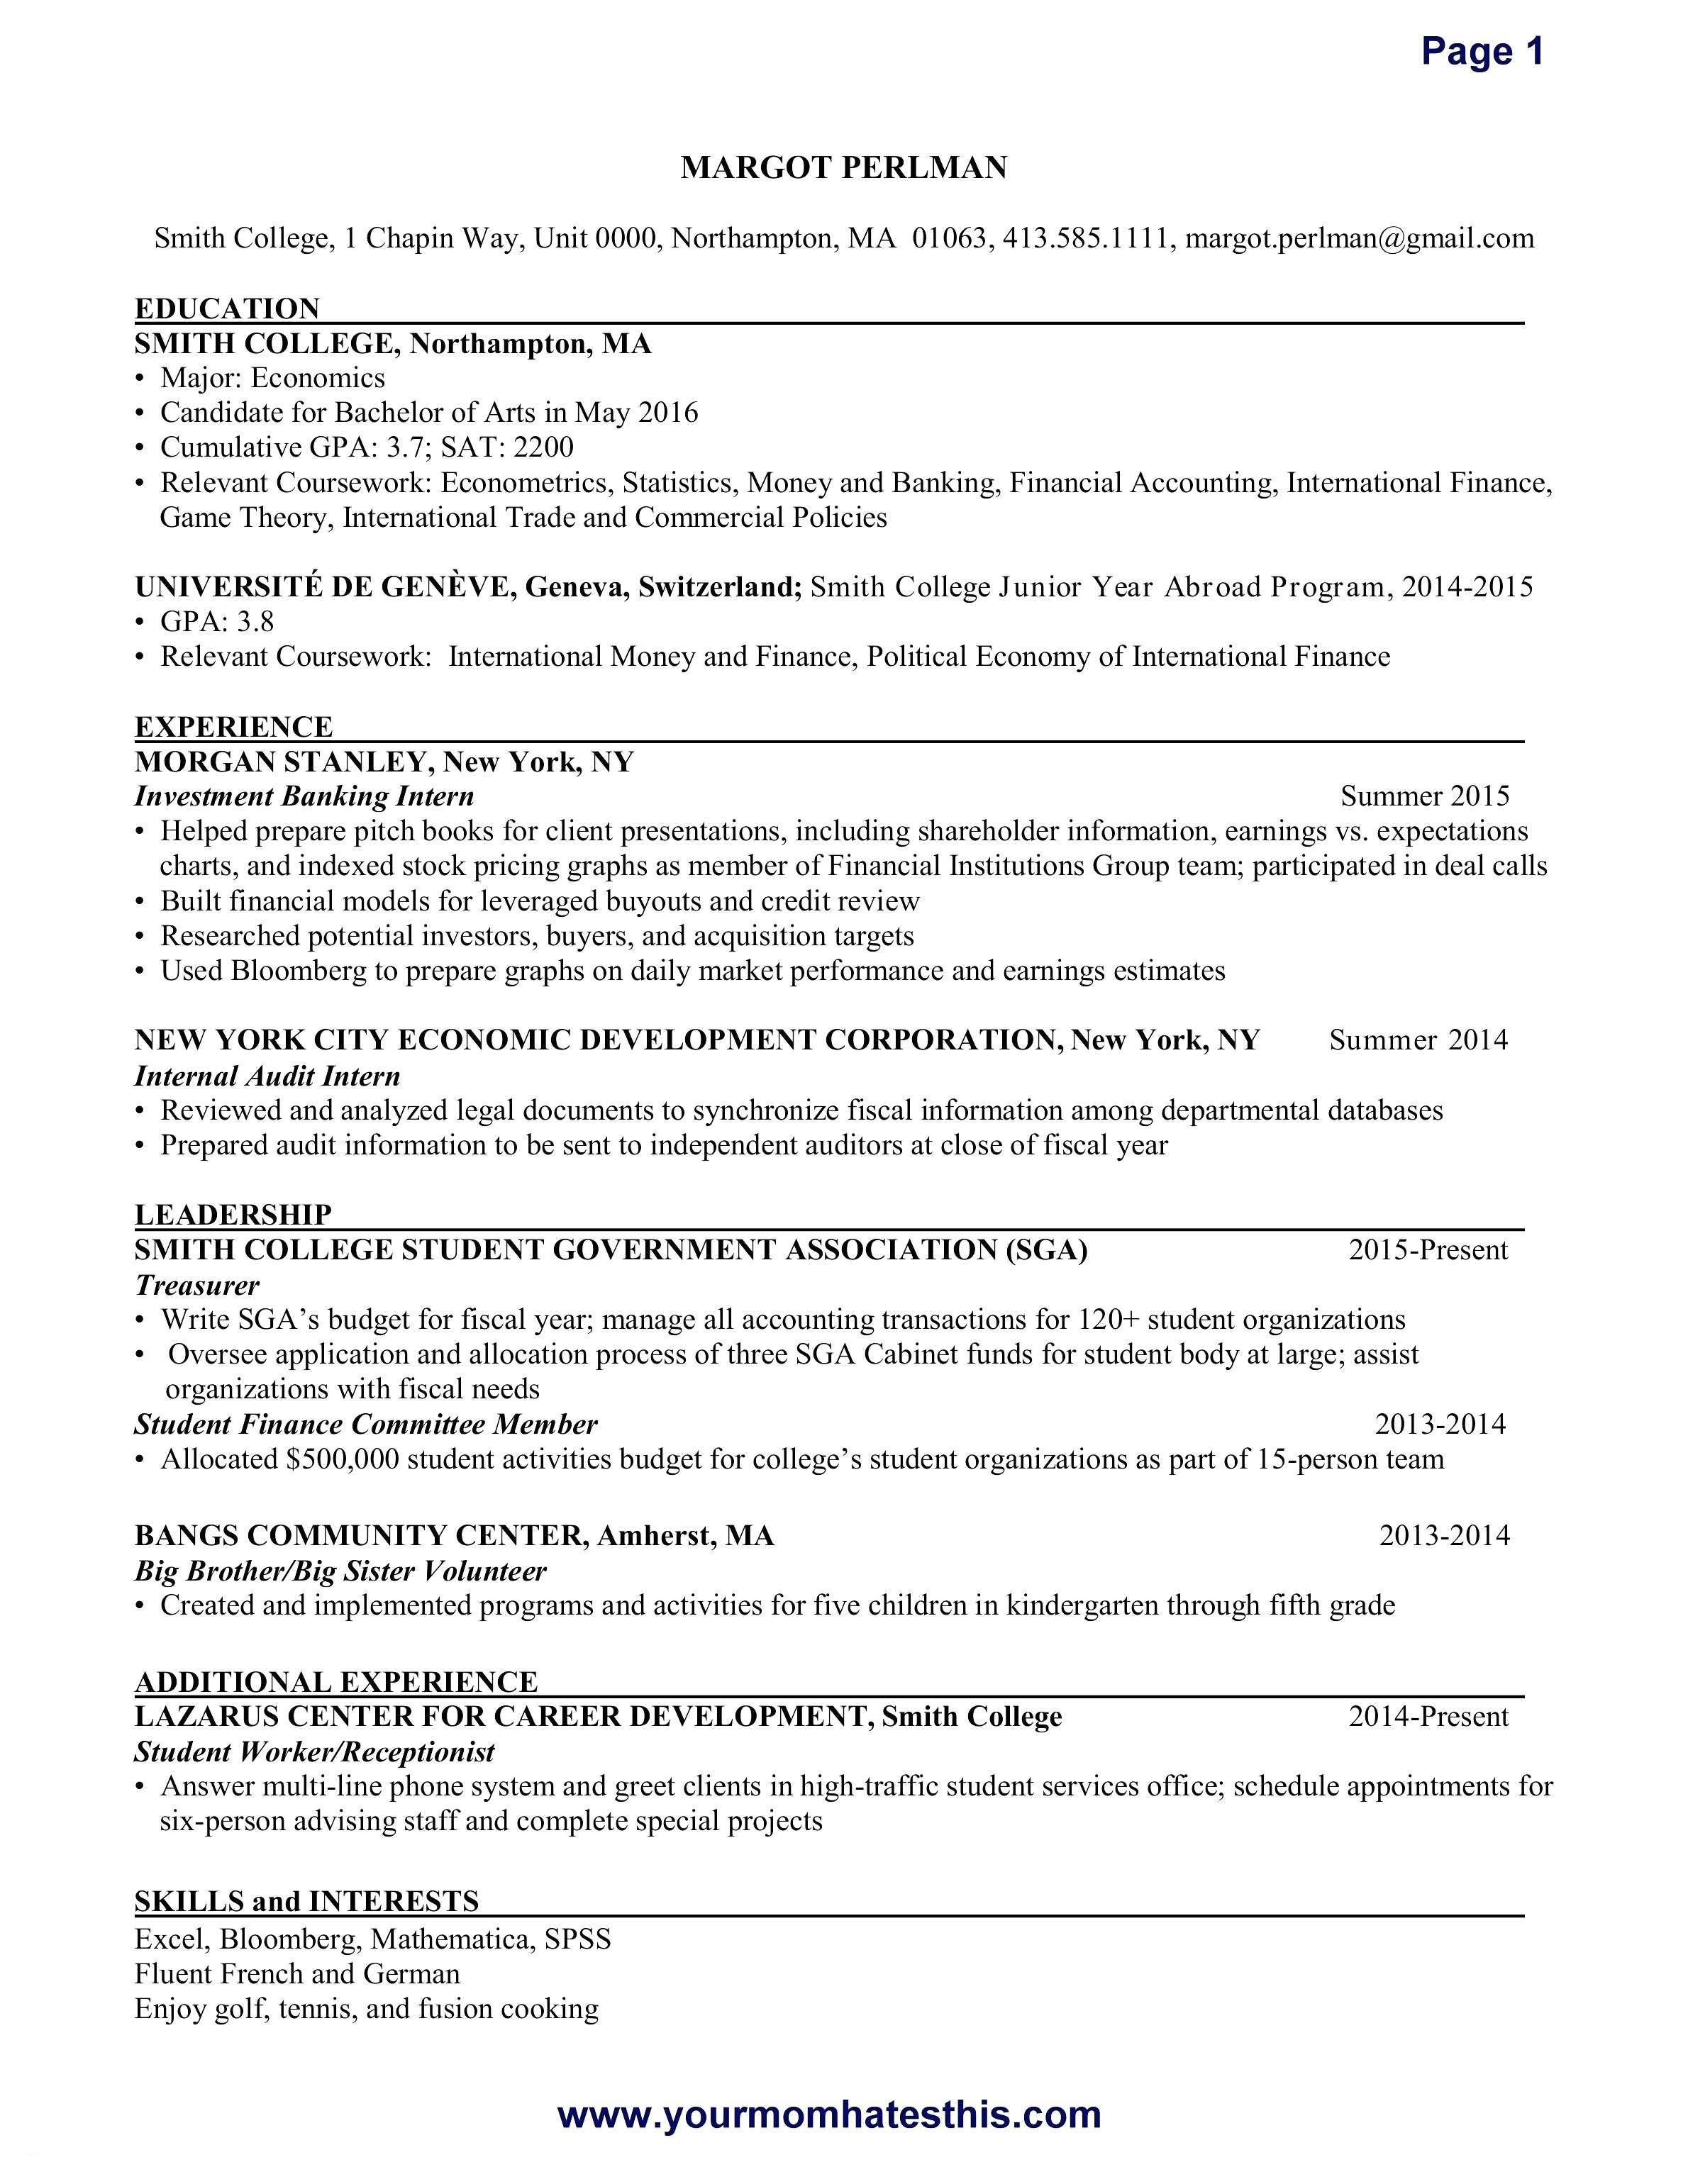 Group Resume Template - Awesome Security Ficer Resume Sample